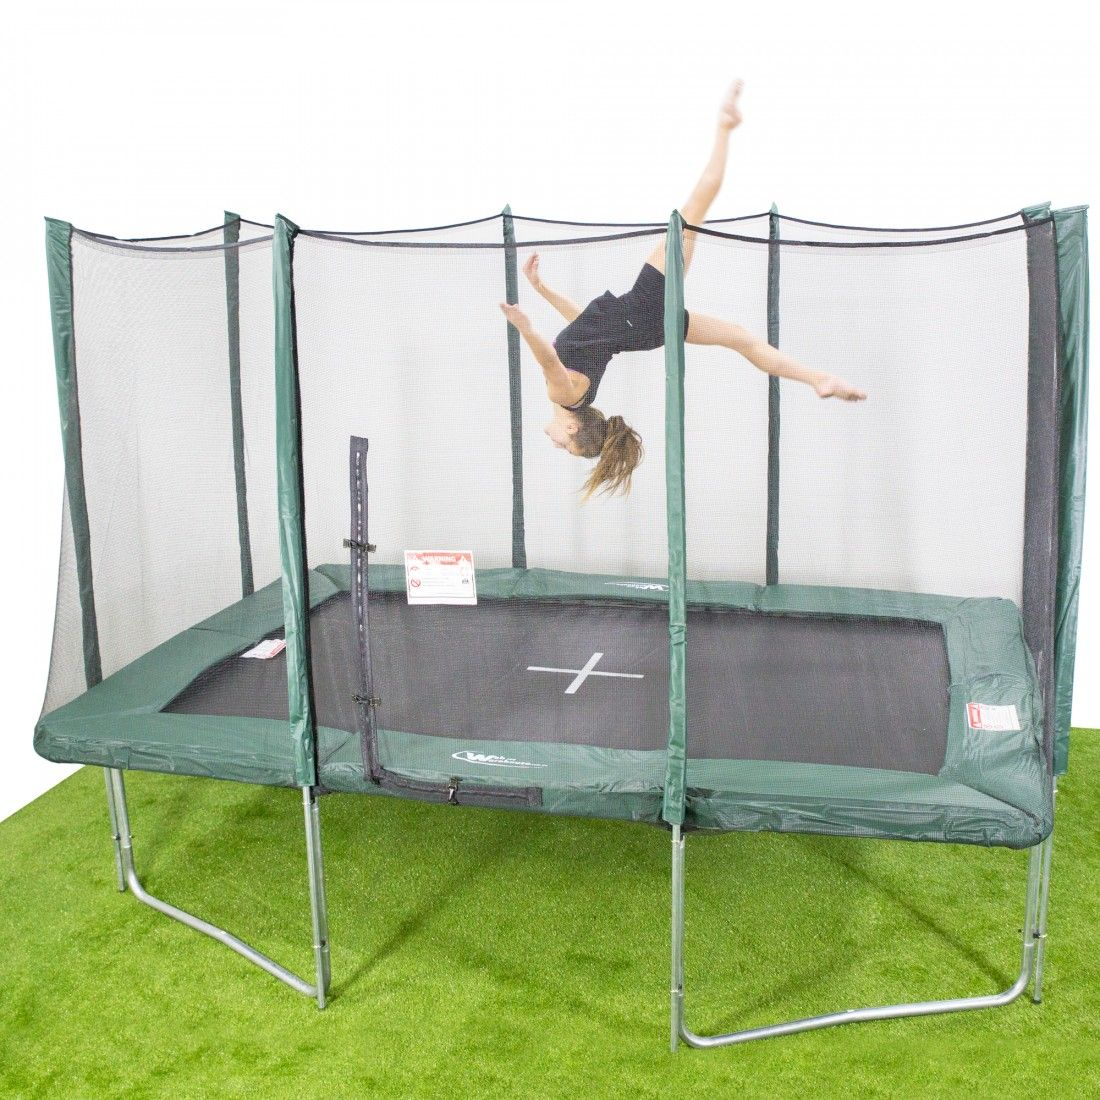 Trampoline Sale Australia Best 20 43 12 Trampoline Ideas On Pinterest Buy Trampoline